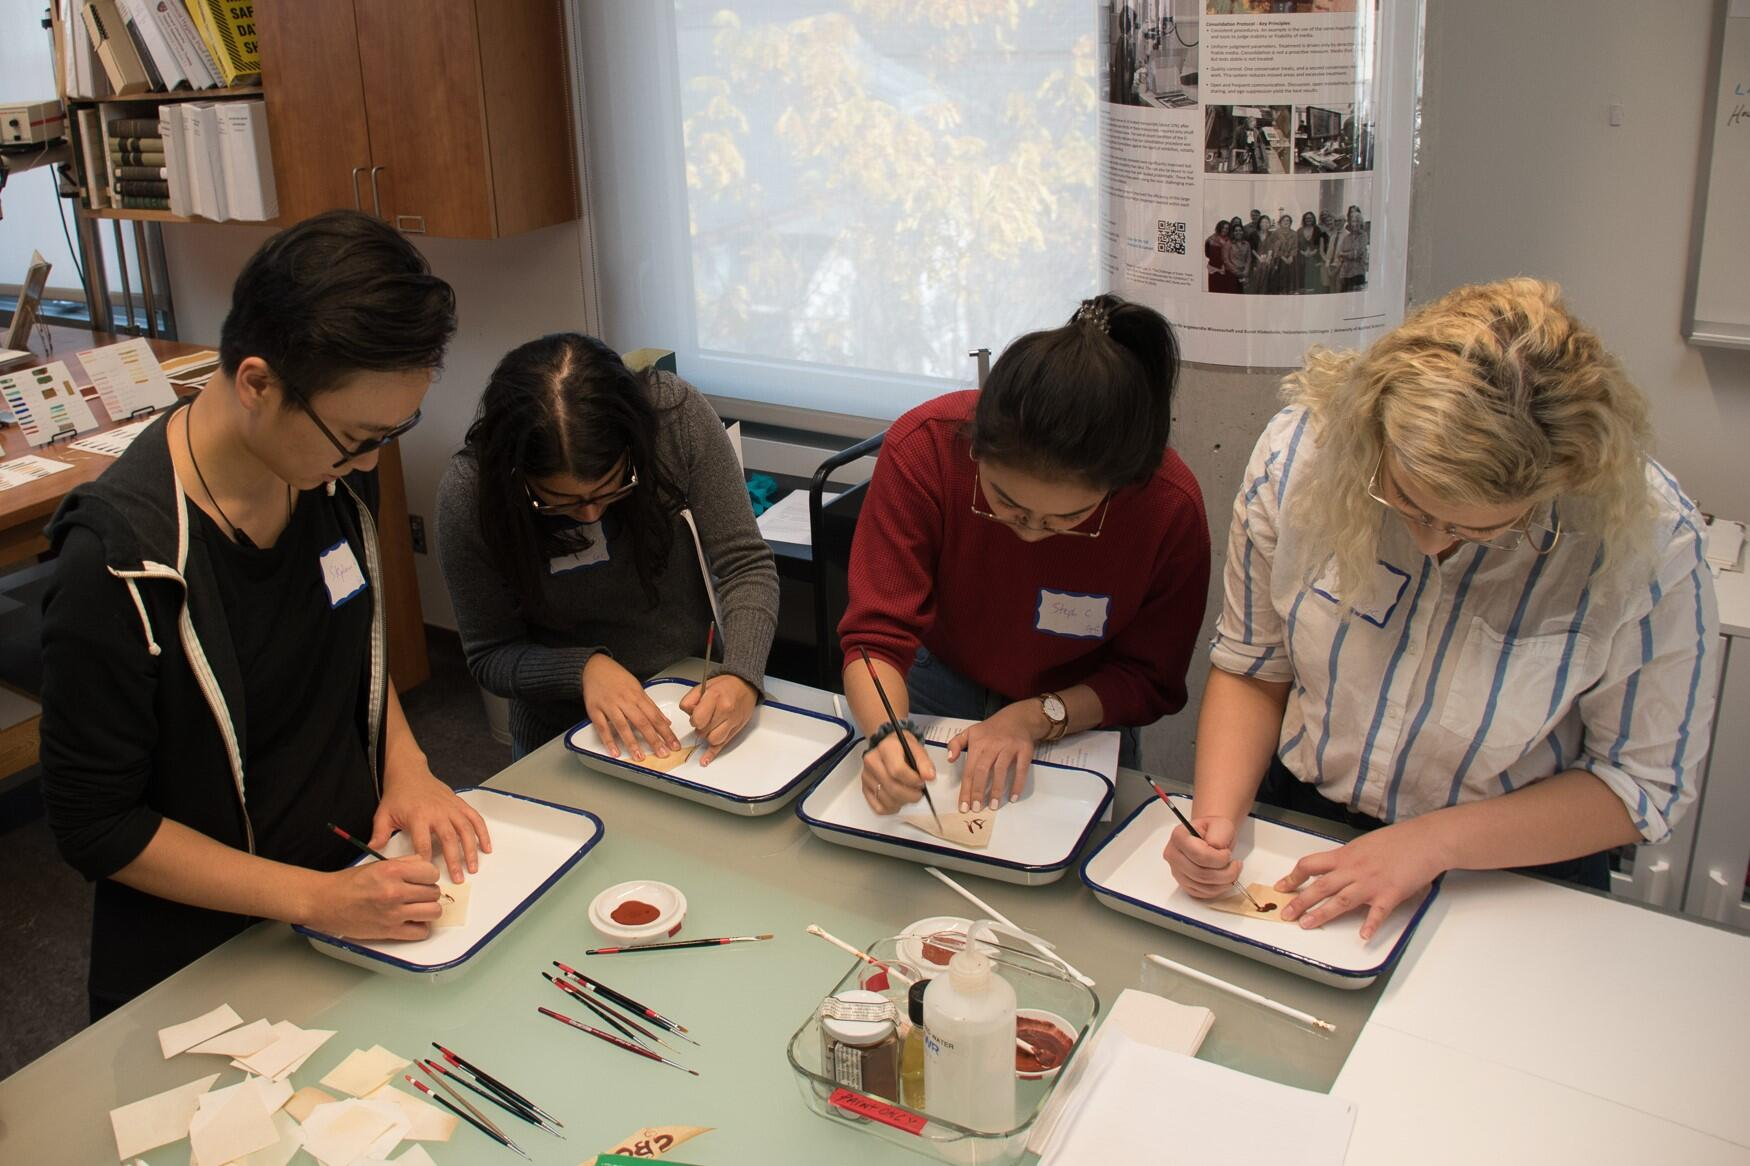 Students painting on small fragments of paper during a field trip to the Weissman Preservation Center.